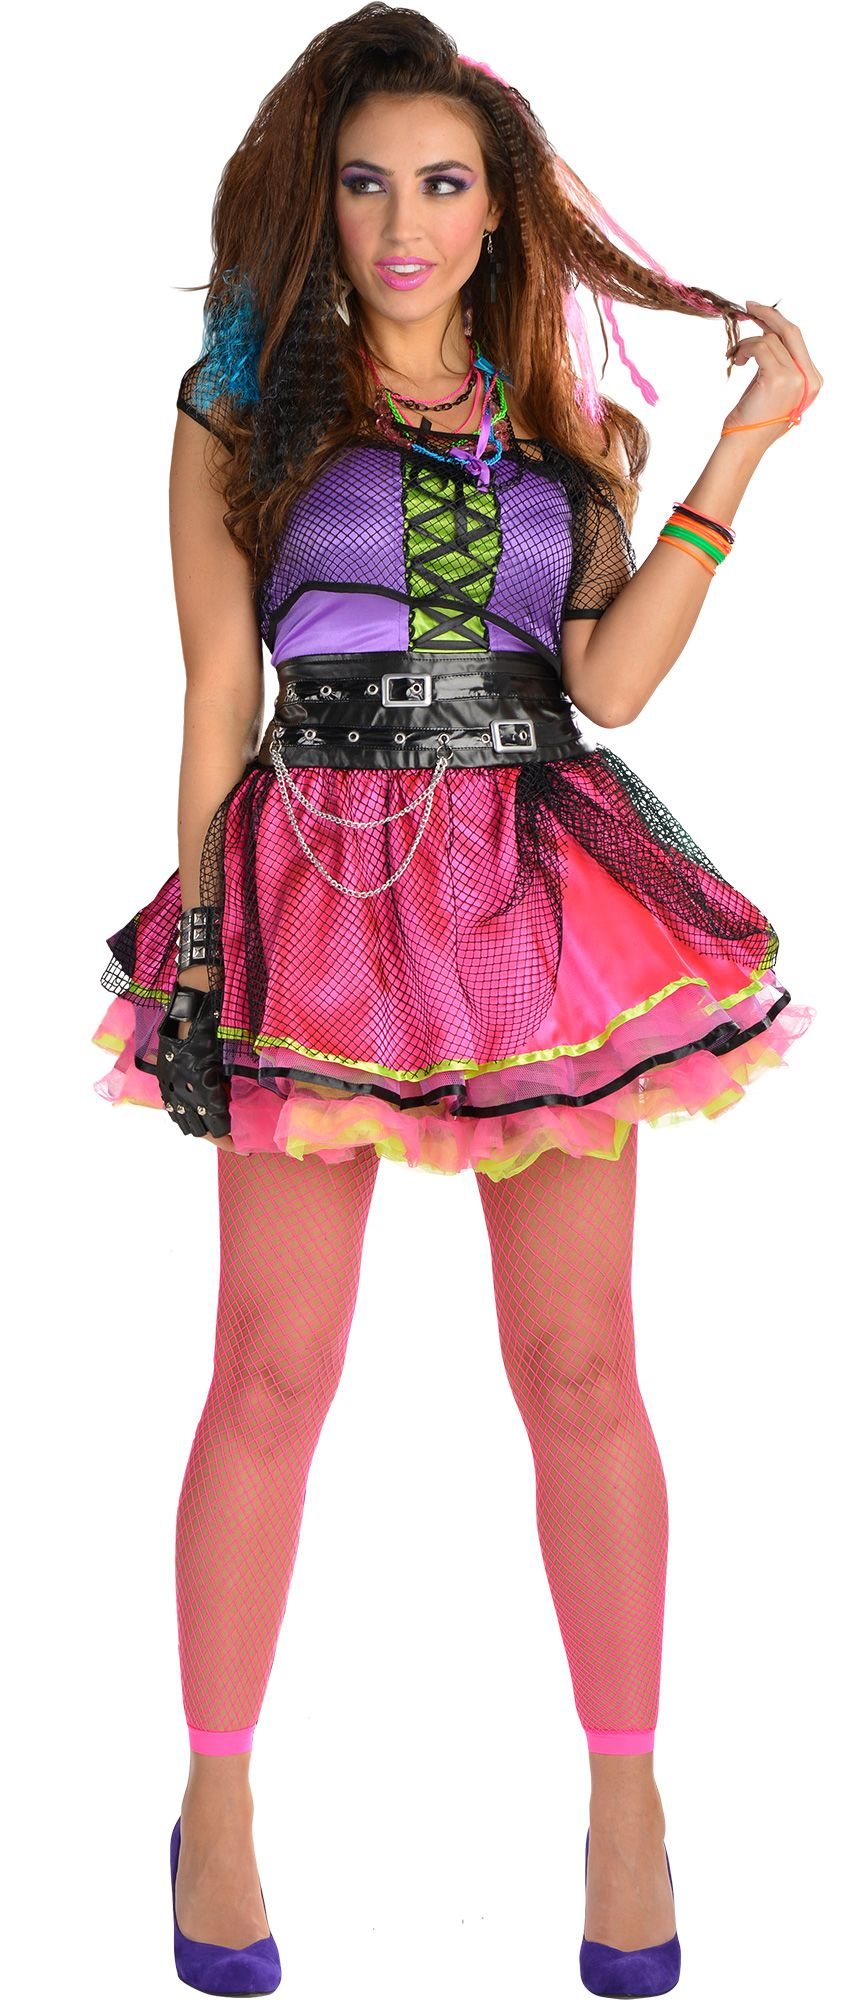 Women\'s 80s Pop Star Costume Accessories | Party City Canada